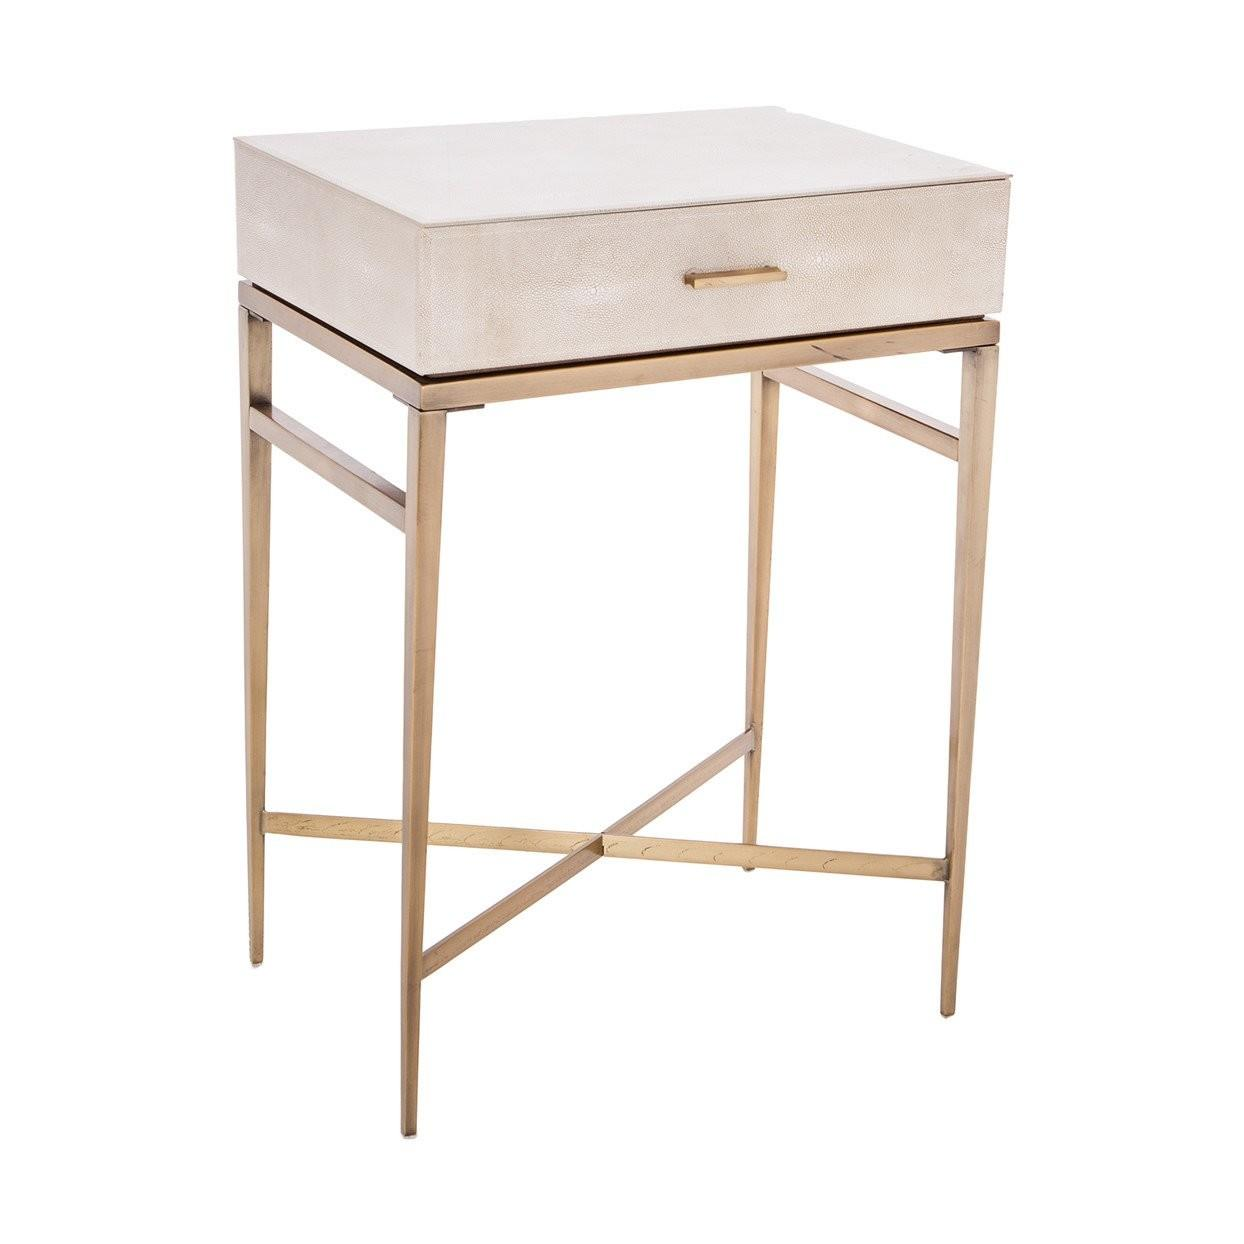 Lucile Taupe Shagreen Gold Side Table Shropshire Design